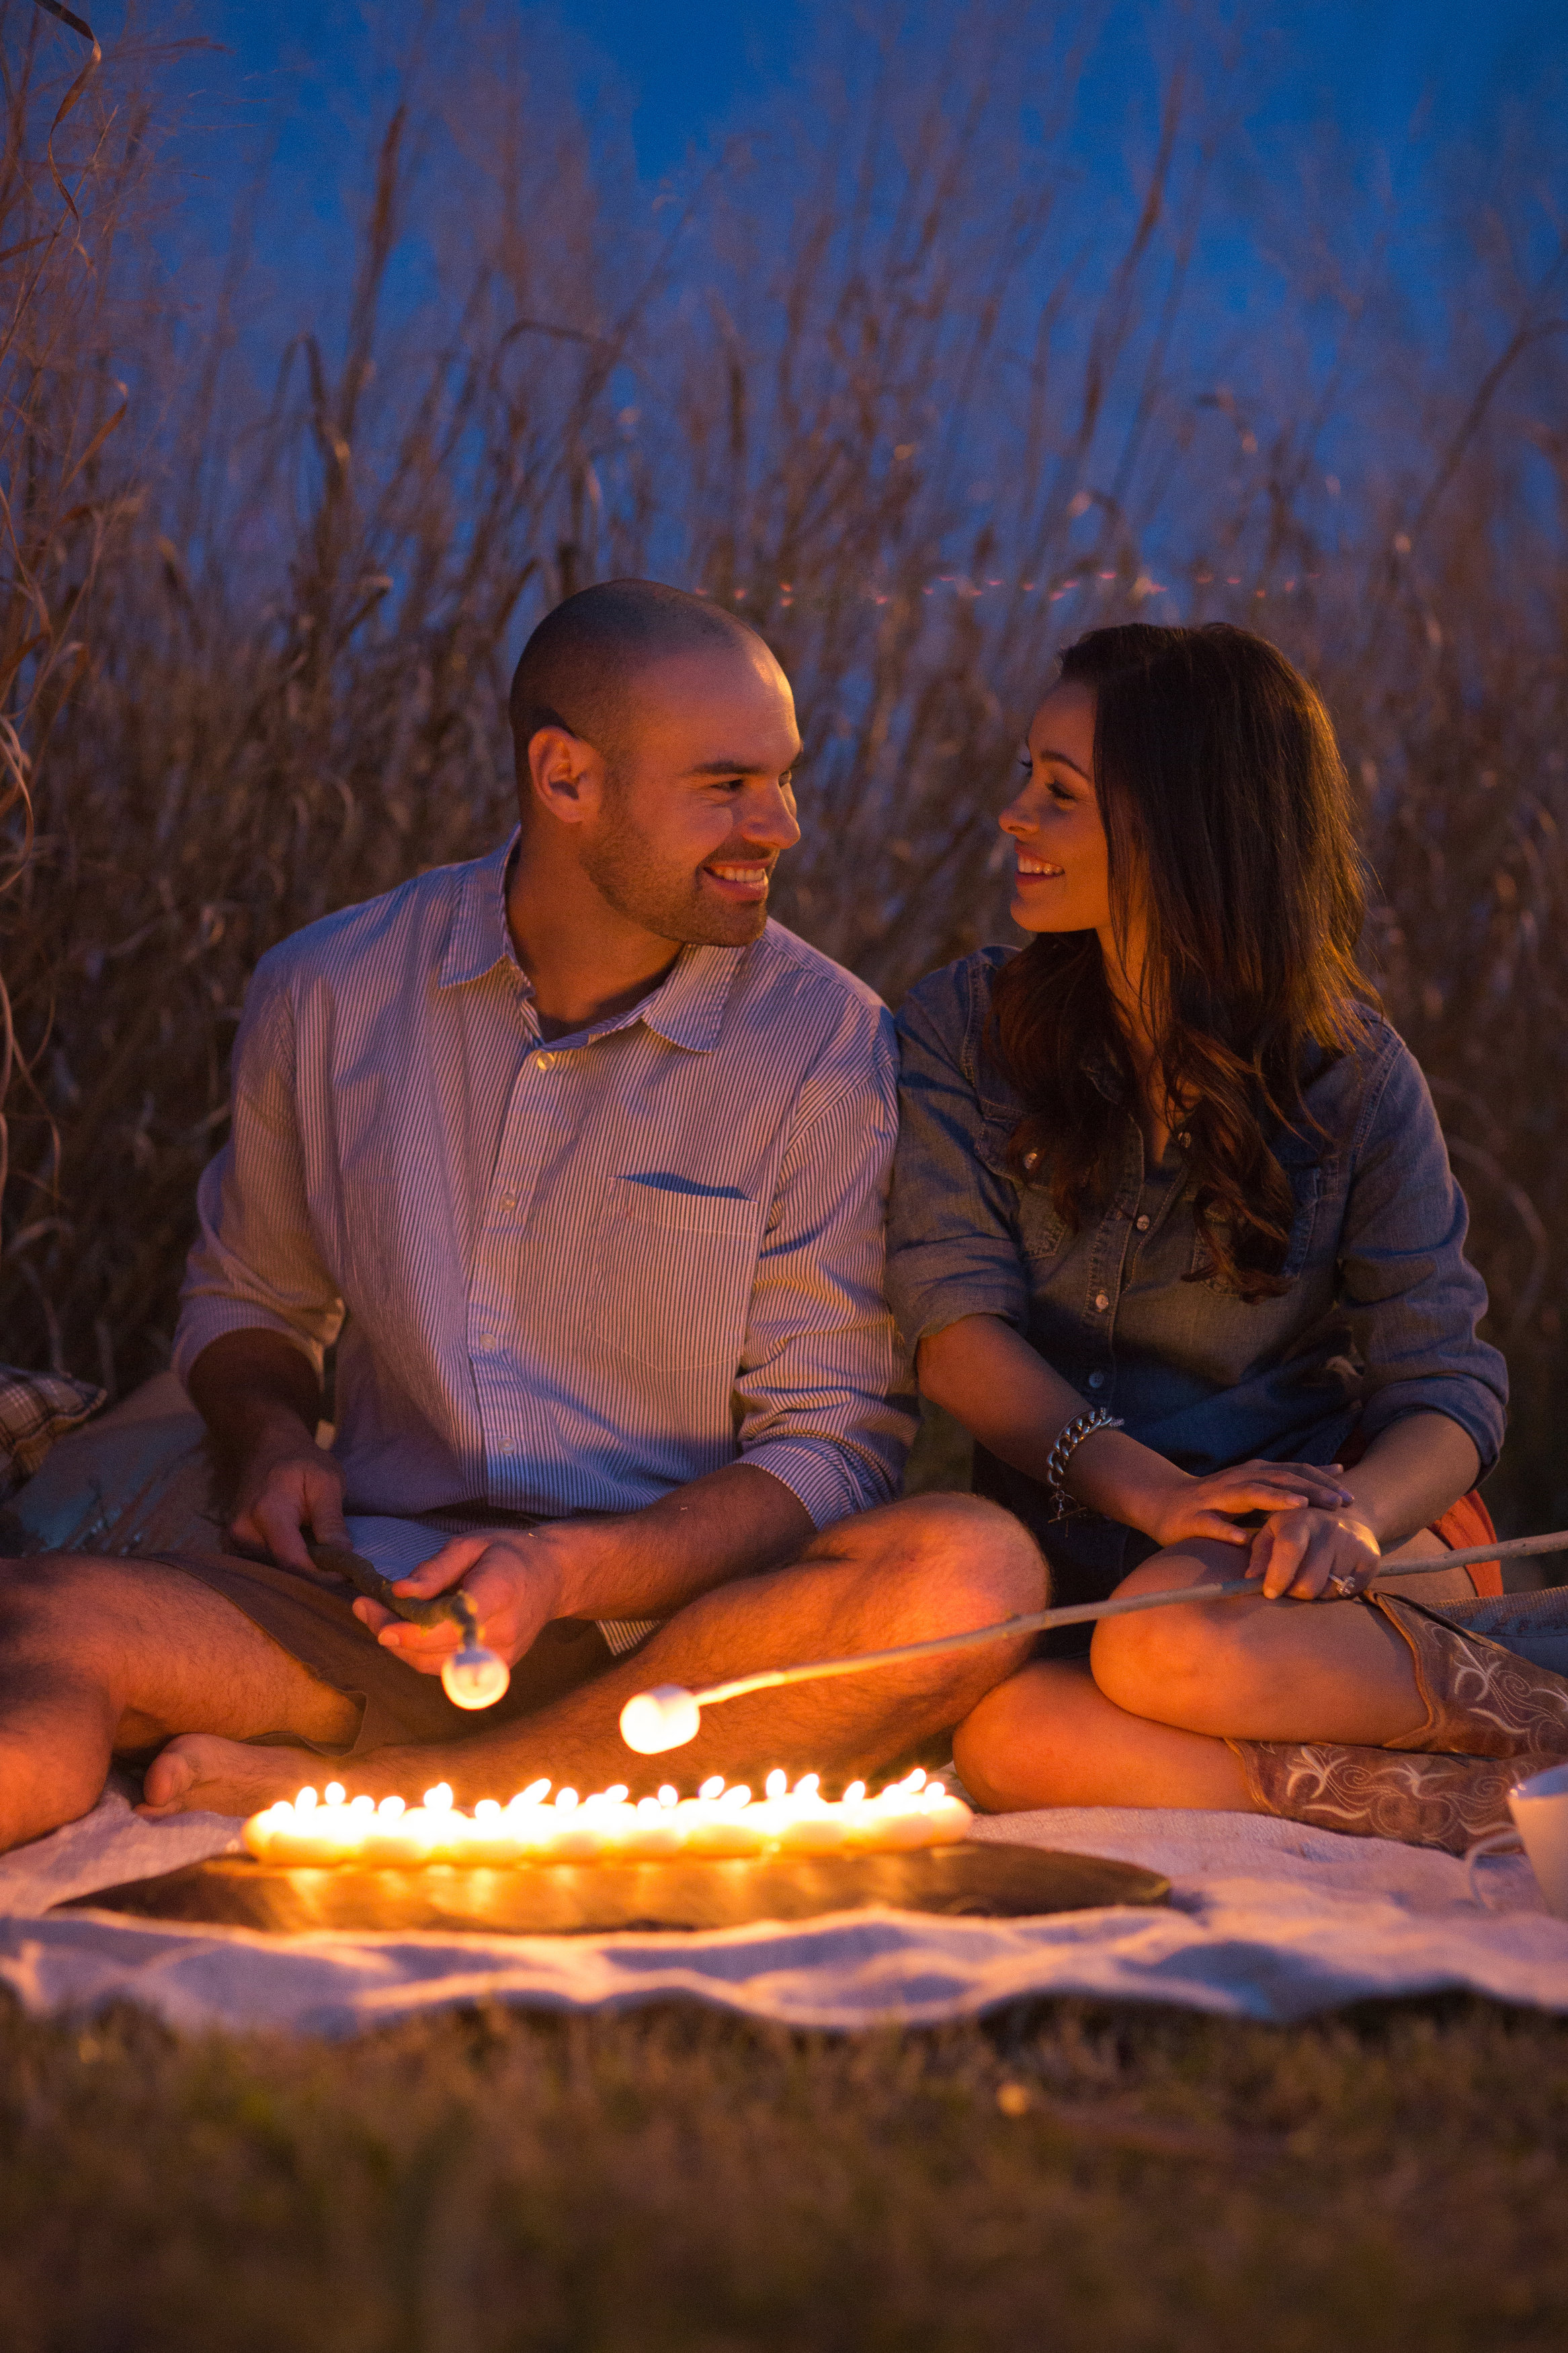 Romantic Backyard Date Ideas : Romantic Outdoor Date Ideas  Dallas Nutritionist  Nutrition By